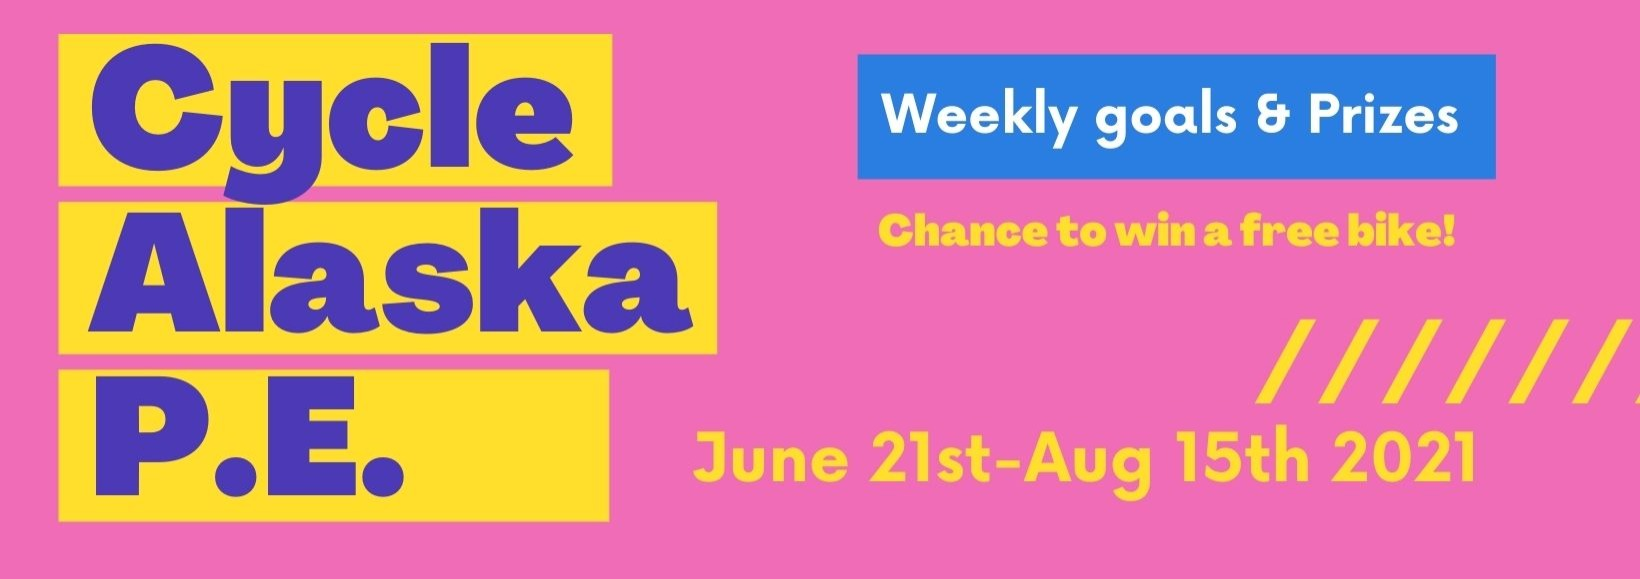 Cycle Alaska P.E. Weekly Goals and prizes, Chance to win a free bike! June 21st-AUg 15th 2021